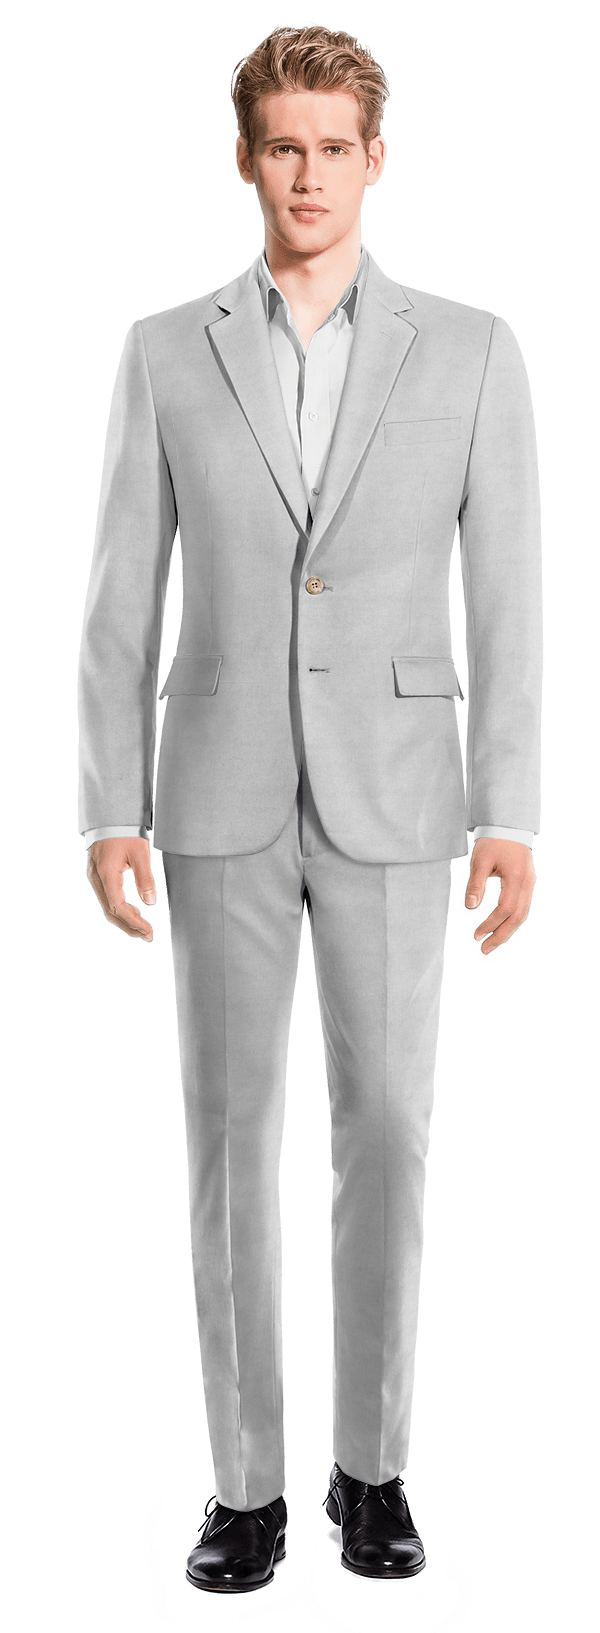 Men's Linen Clothes: Linen Shirts, Linen Pants, Linen Suits. There's a reason clothes have been created with linen for more than 4, years. Linen clothing is a .